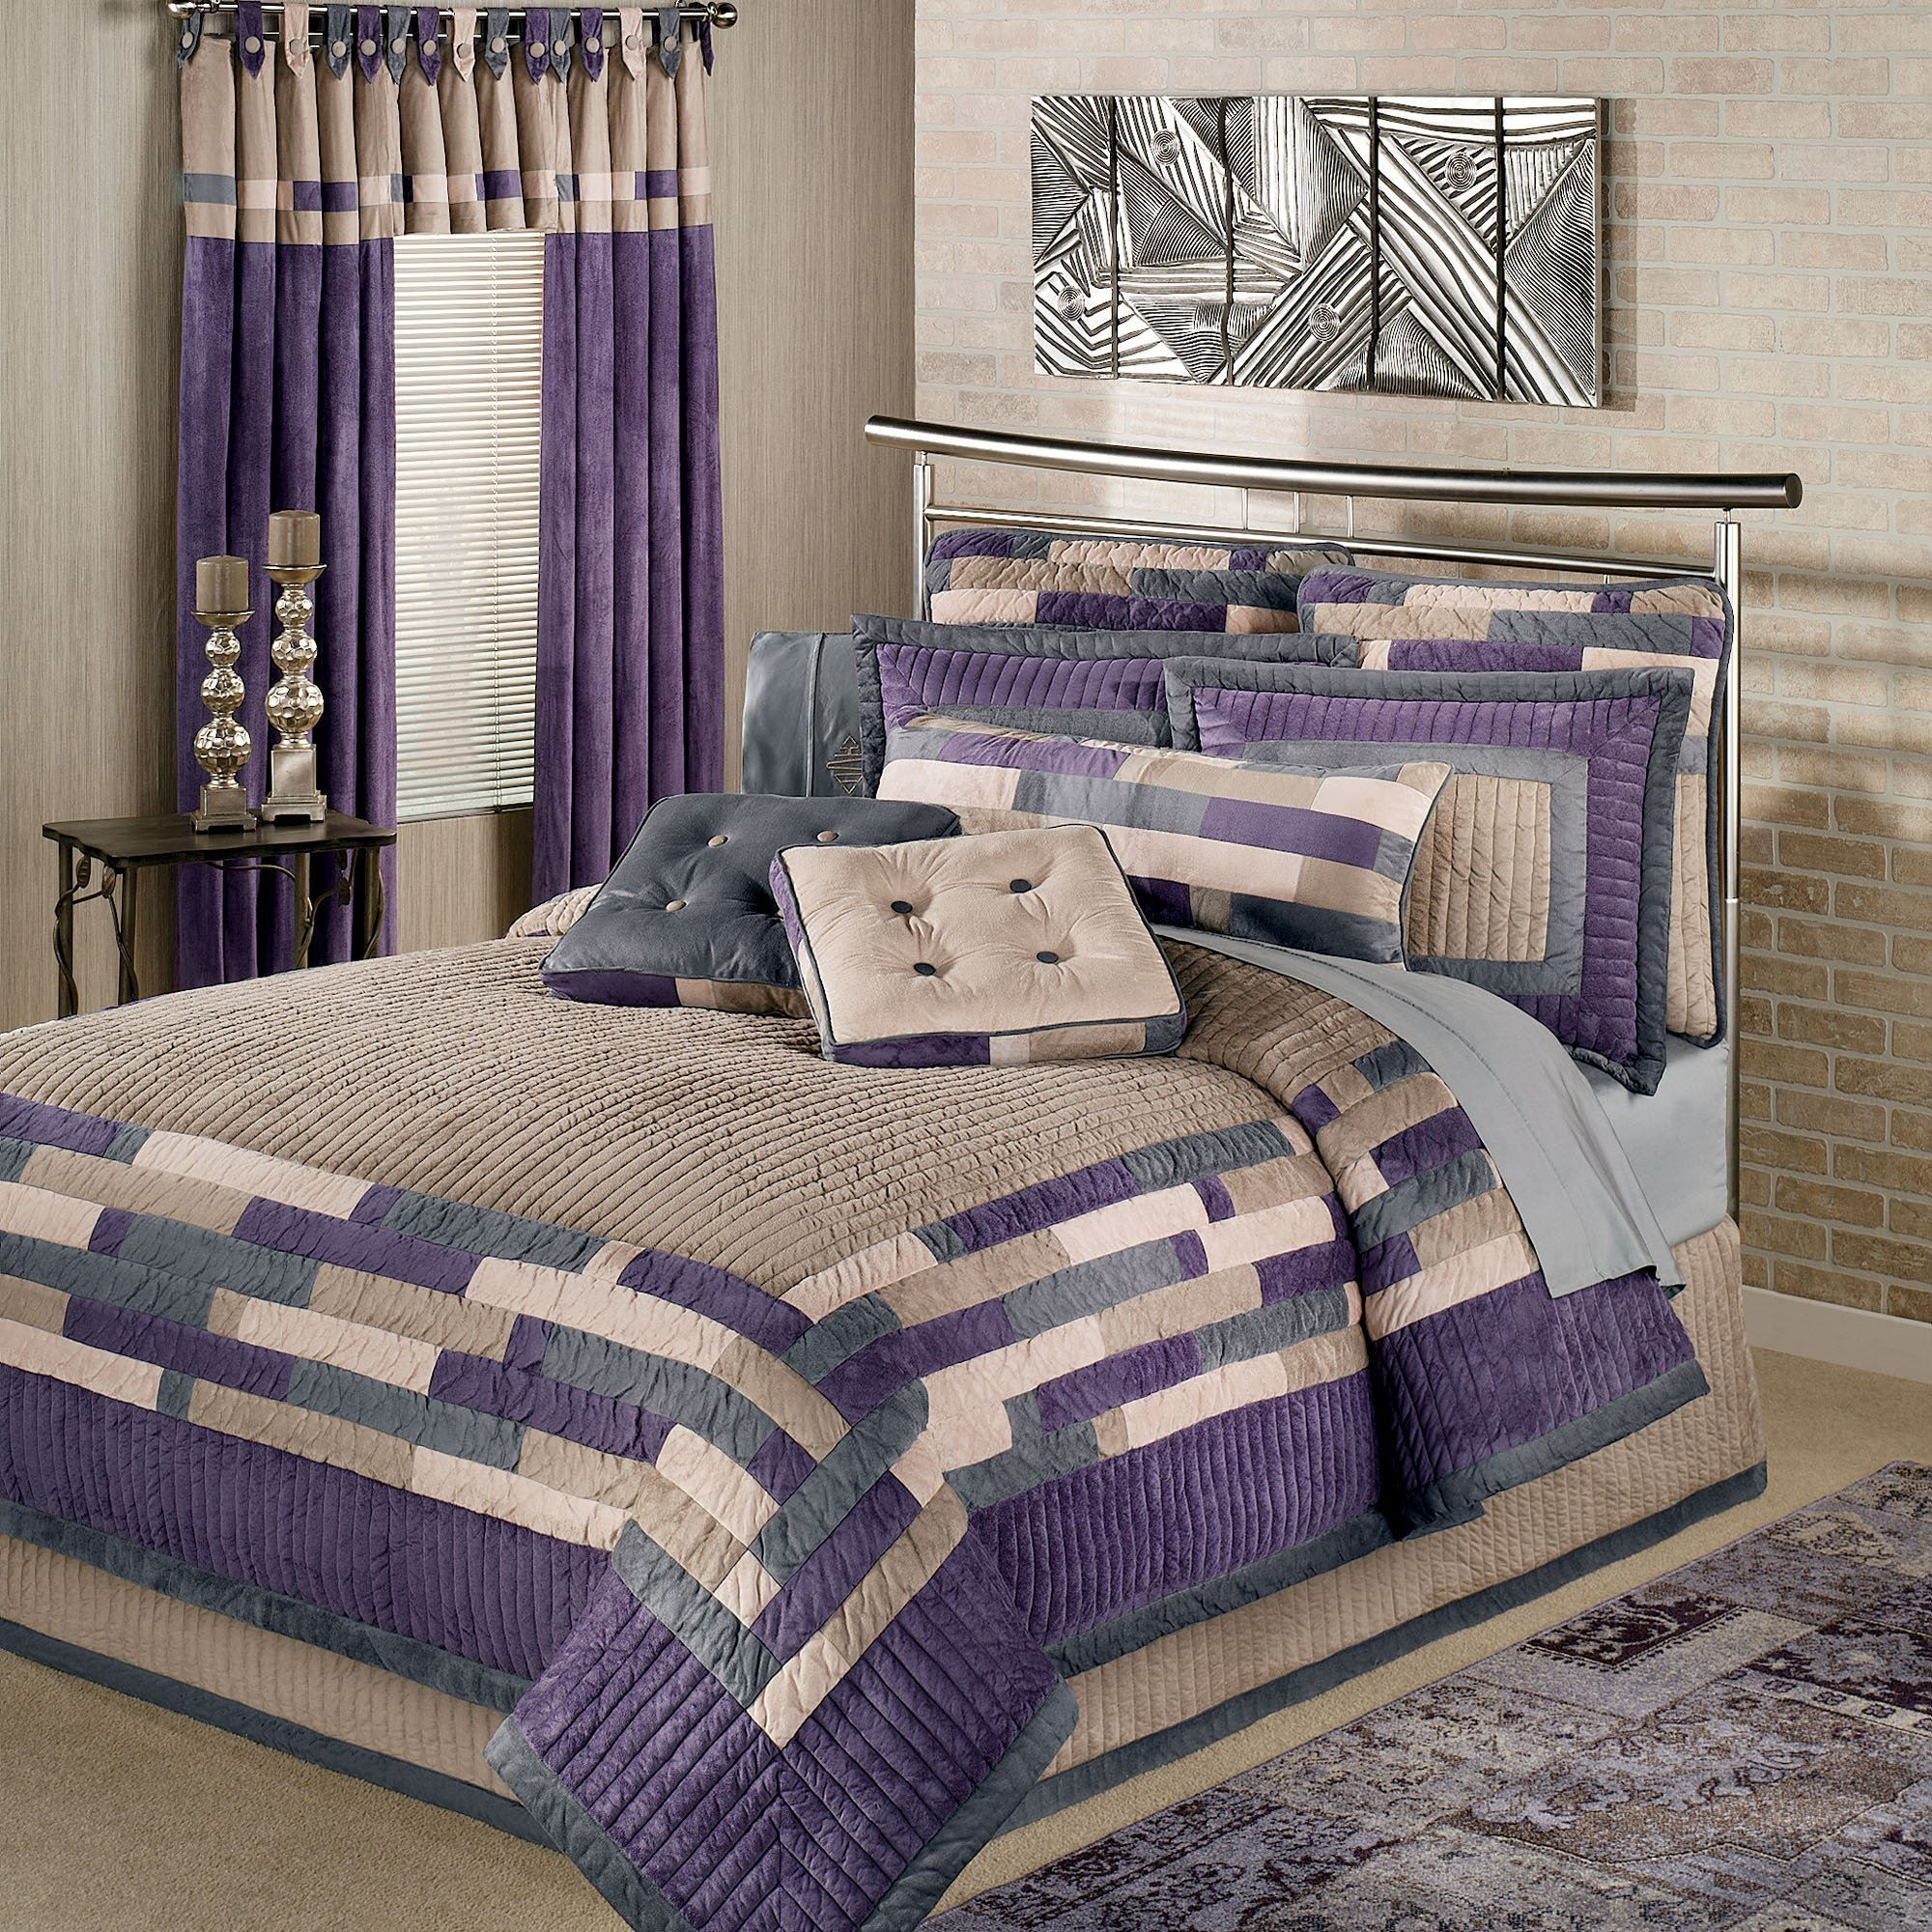 laura keighley itm queen ashley lilac purple quilt set full